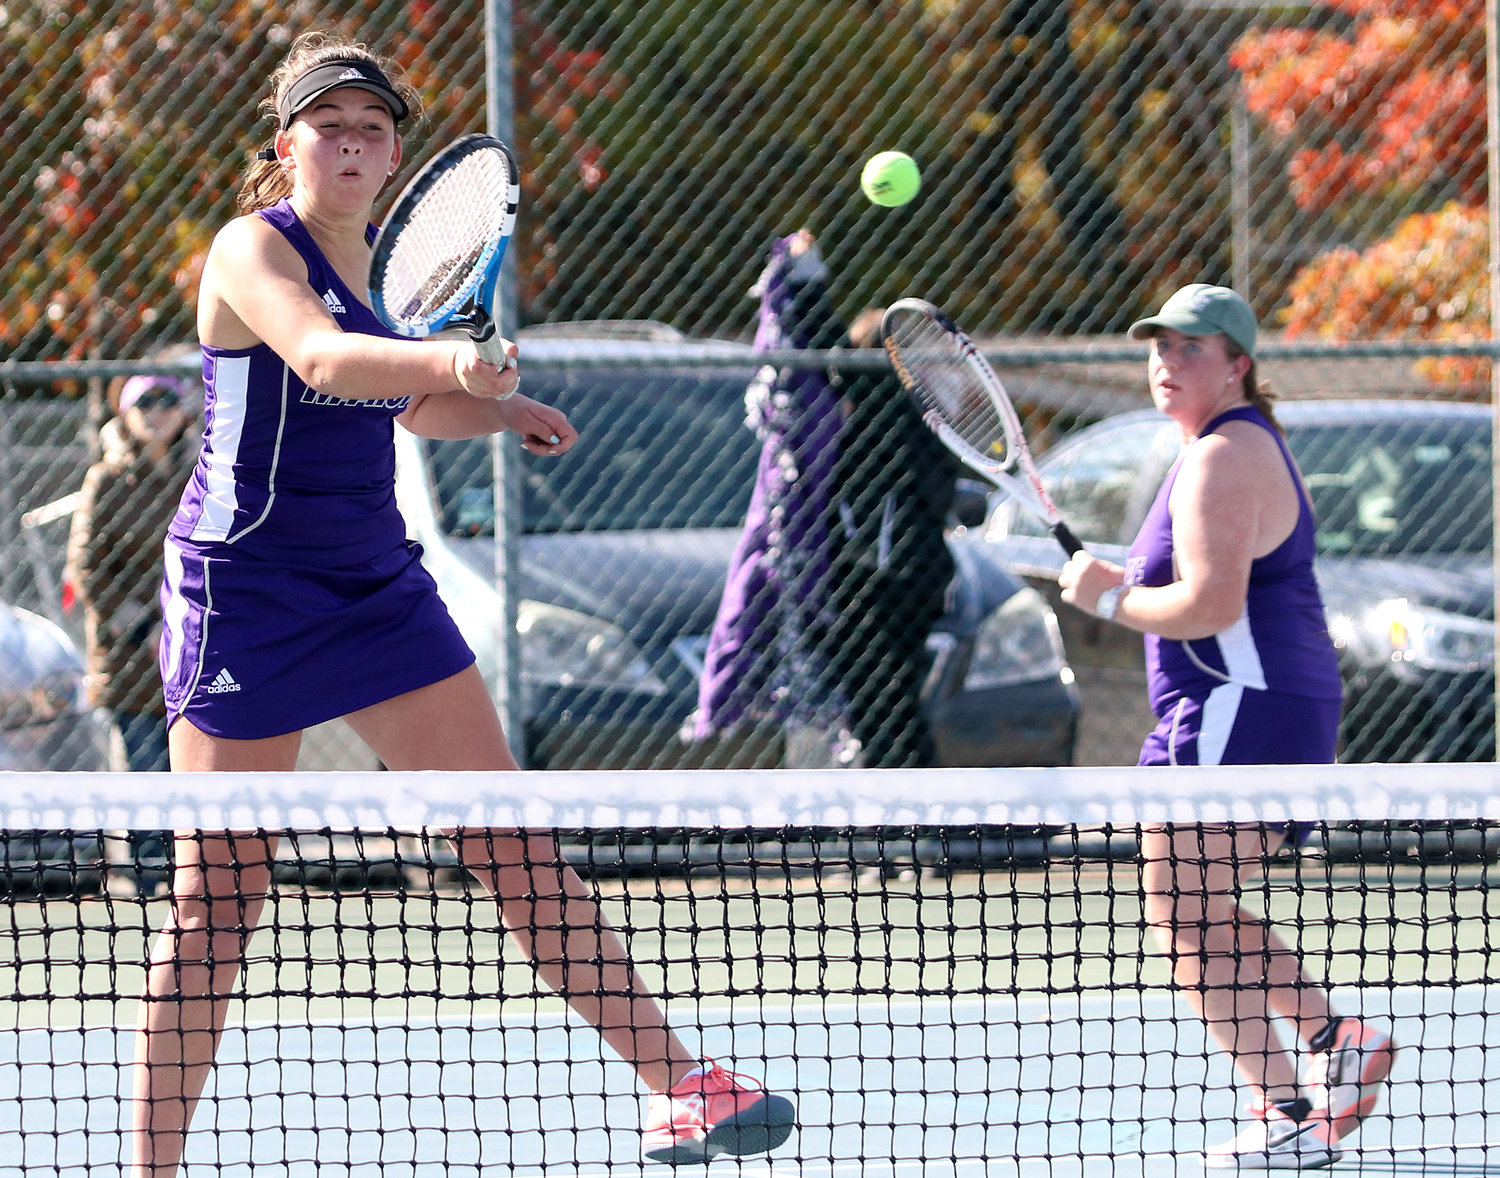 Annie Kryzwicki (left) hits a volley with No. 1 doubles partner Ellee Kopecky.